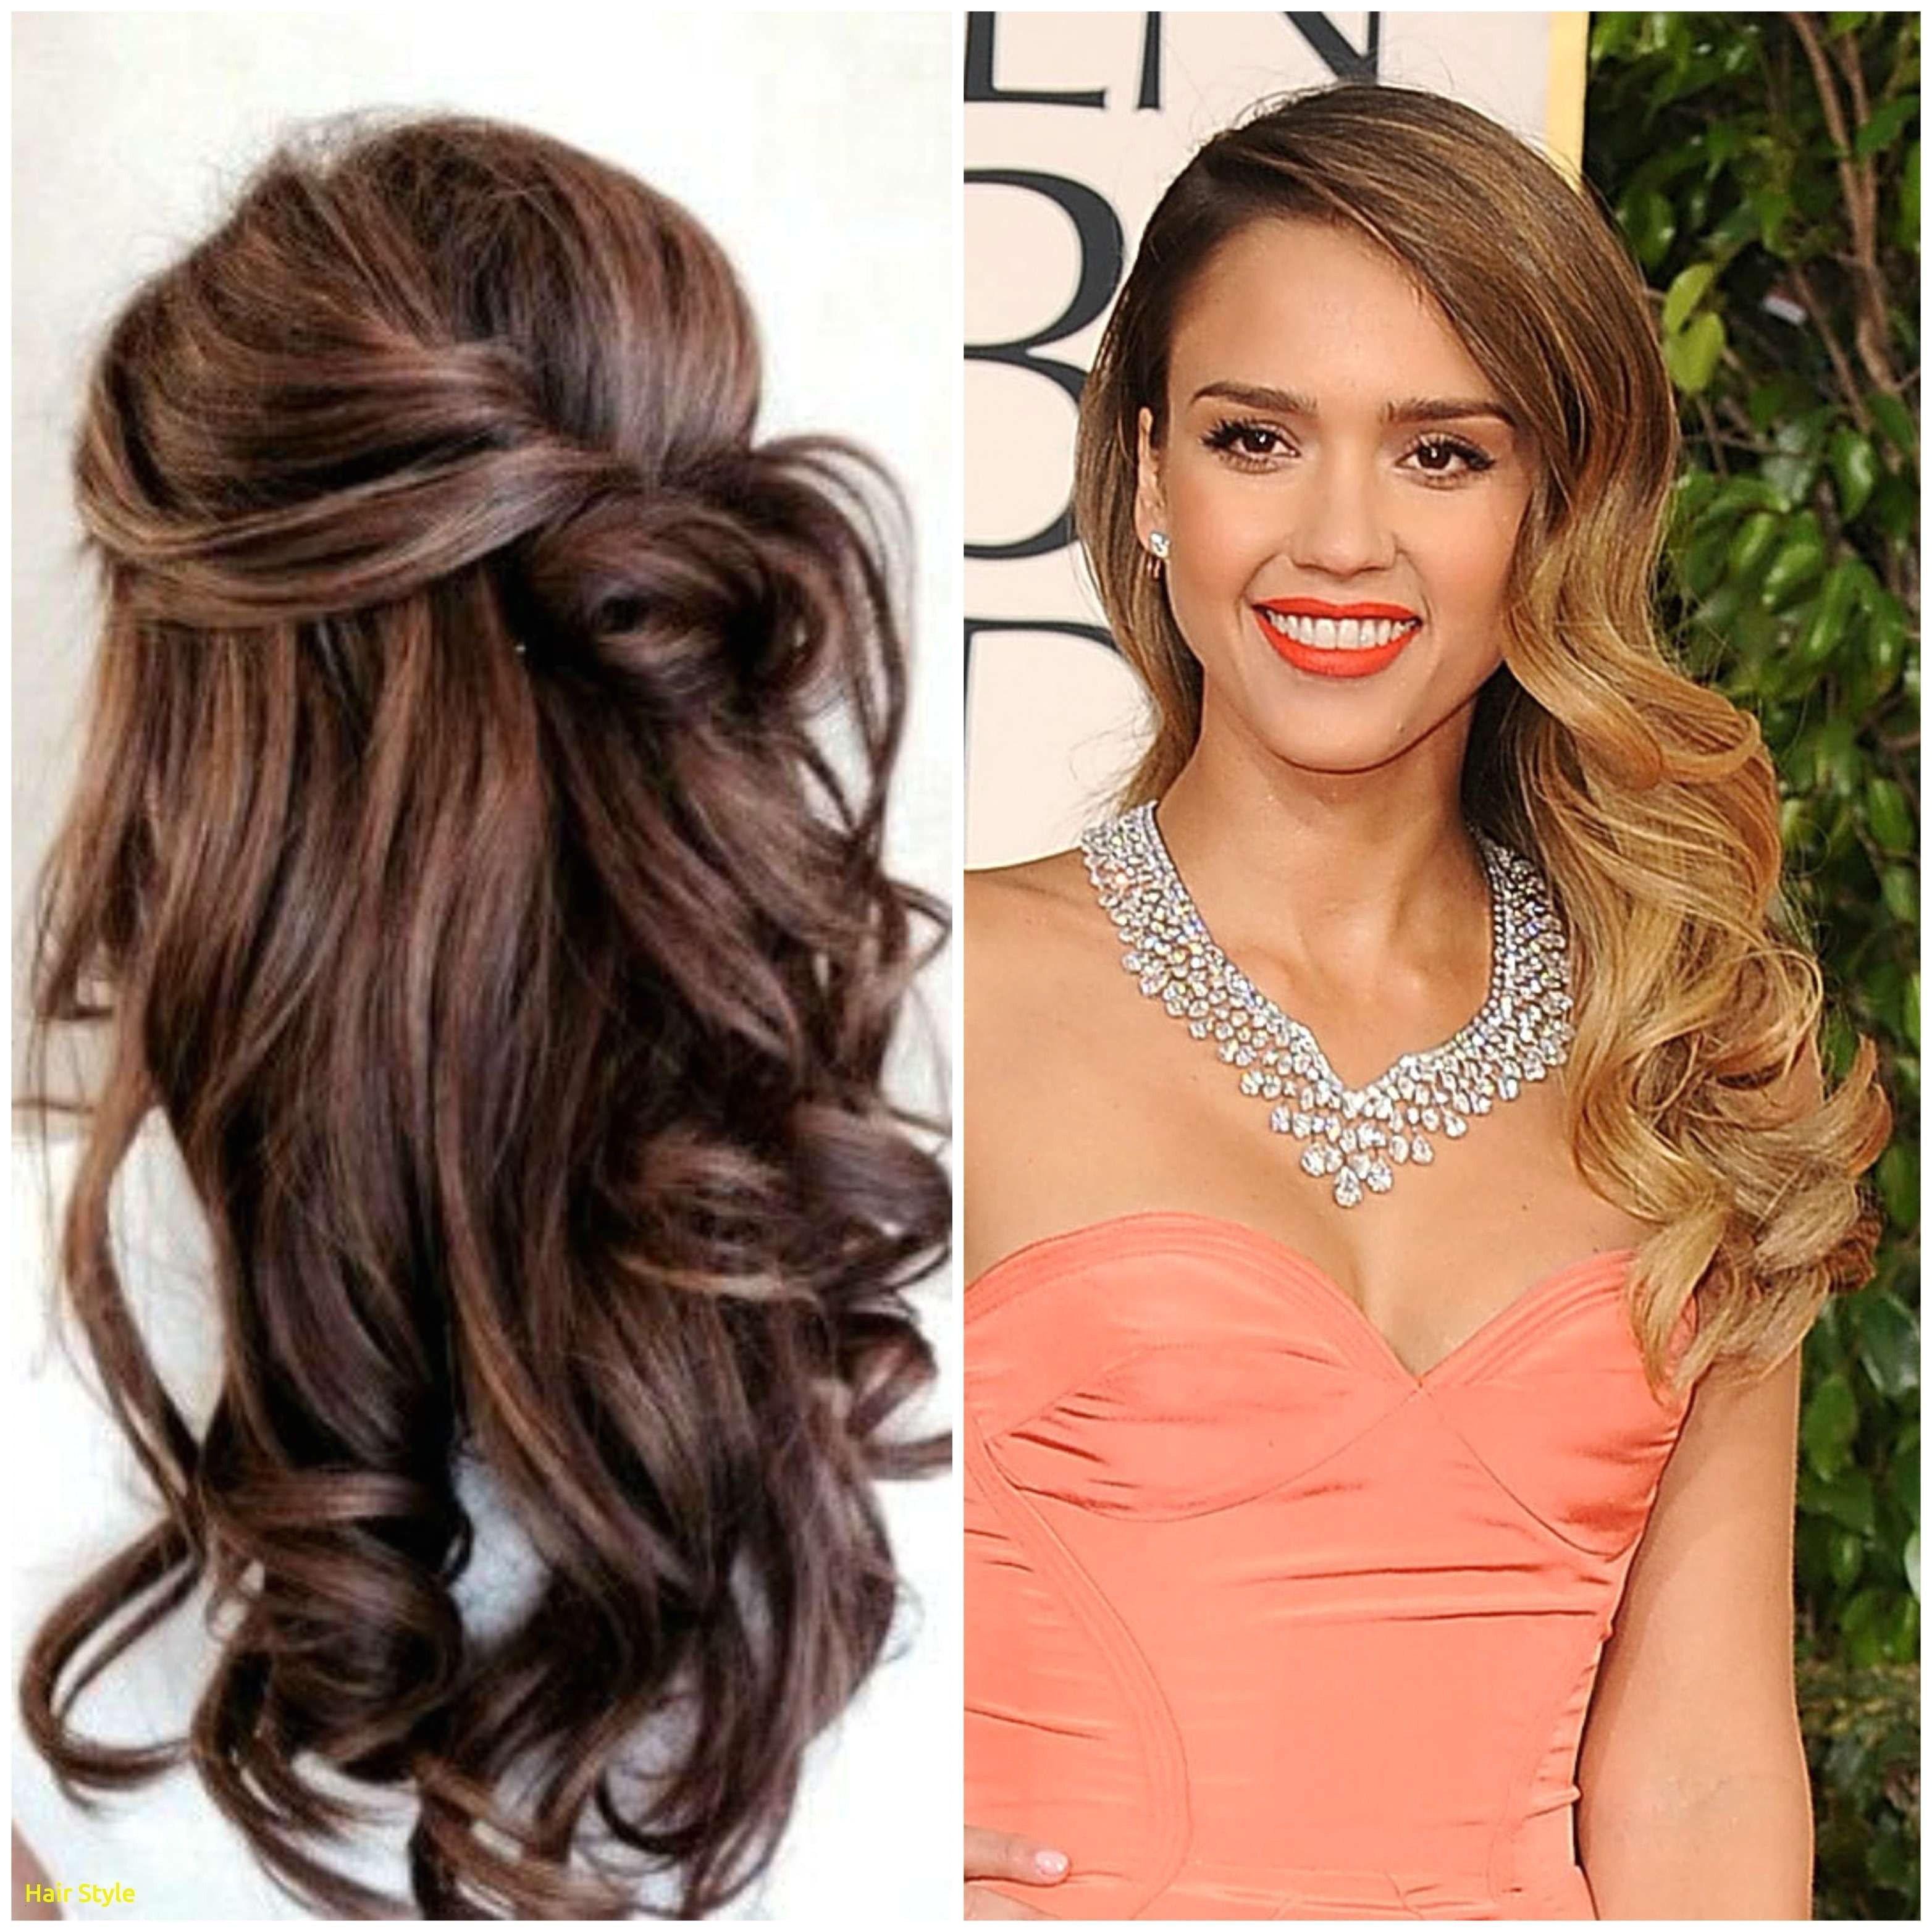 hairstyle long hair beautiful inspirational hairstyles for long hair 2015 luxury i pinimg 1200x 0d of